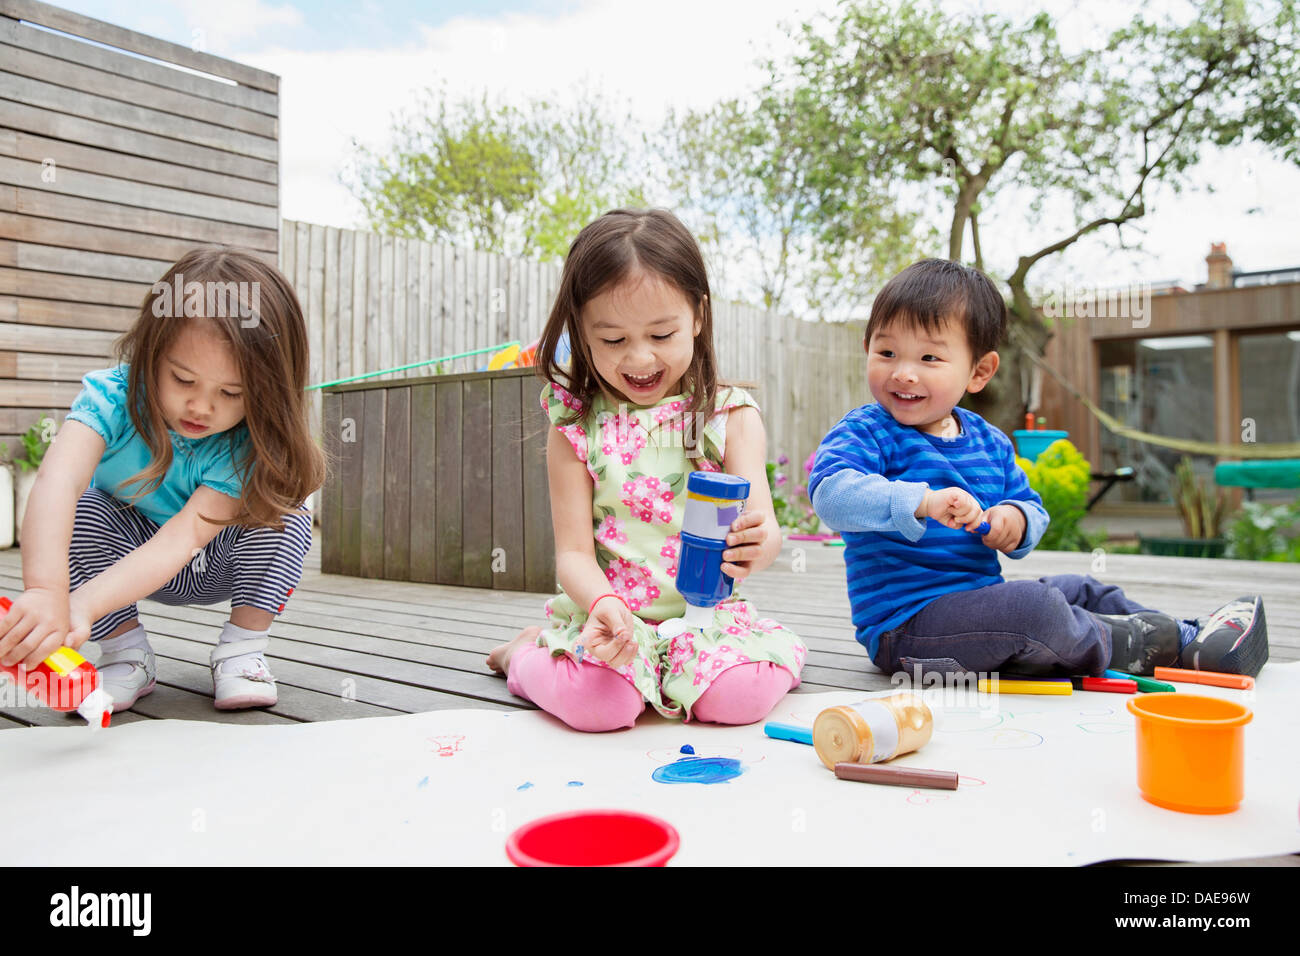 Three young children painting and drawing in garden - Stock Image